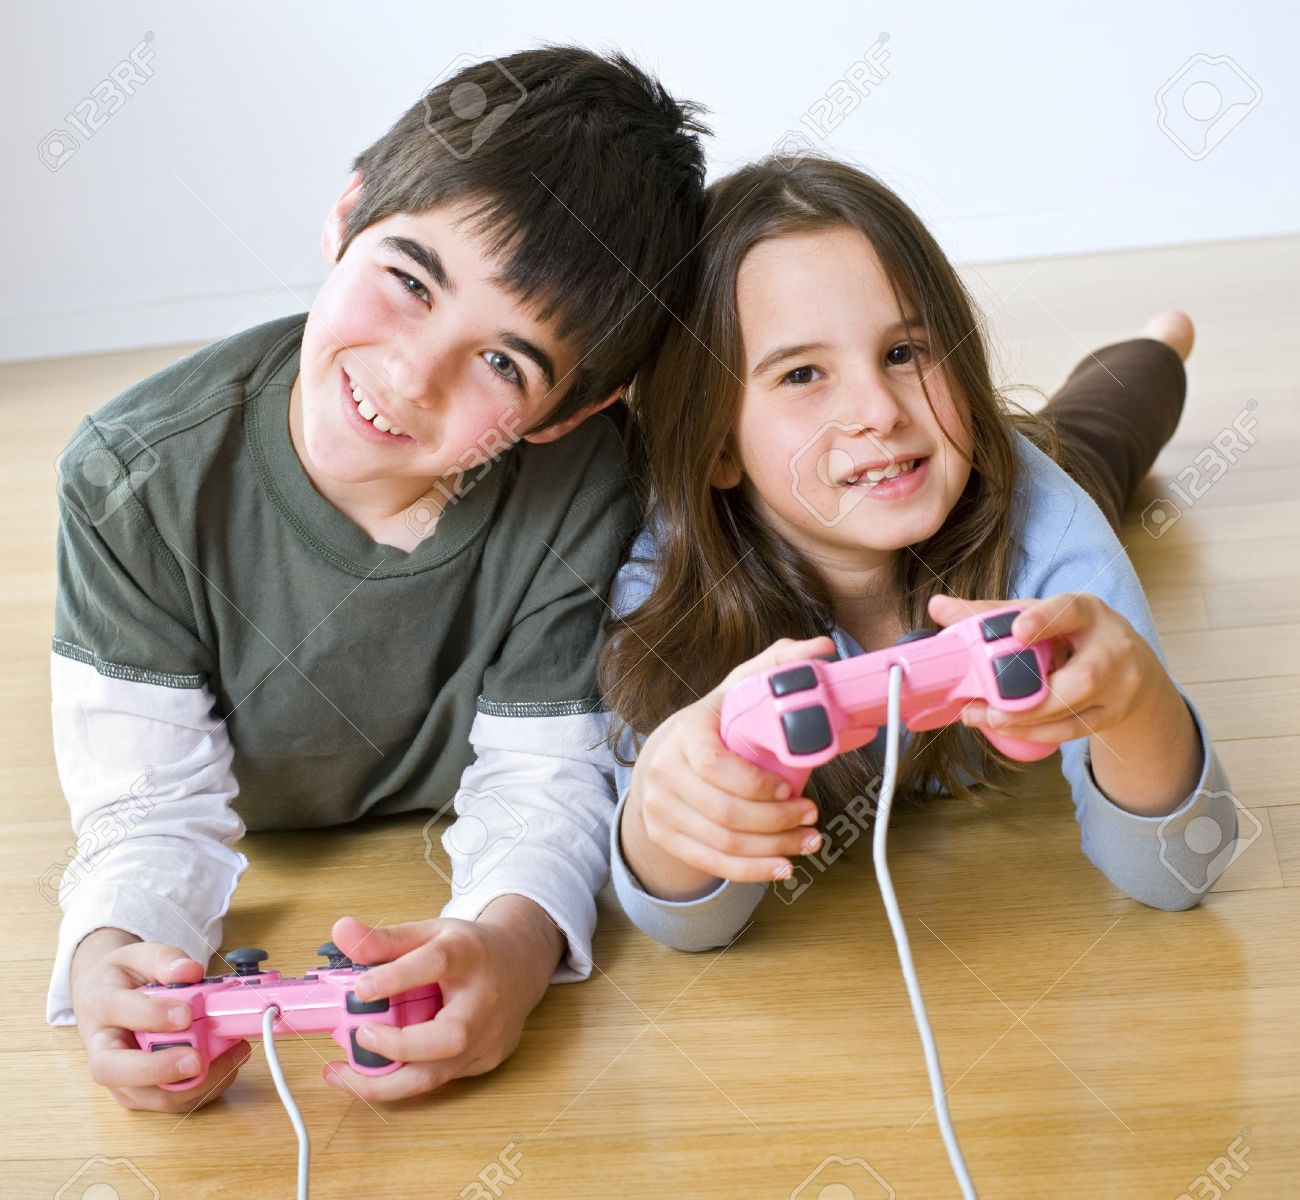 Young boy and girl together